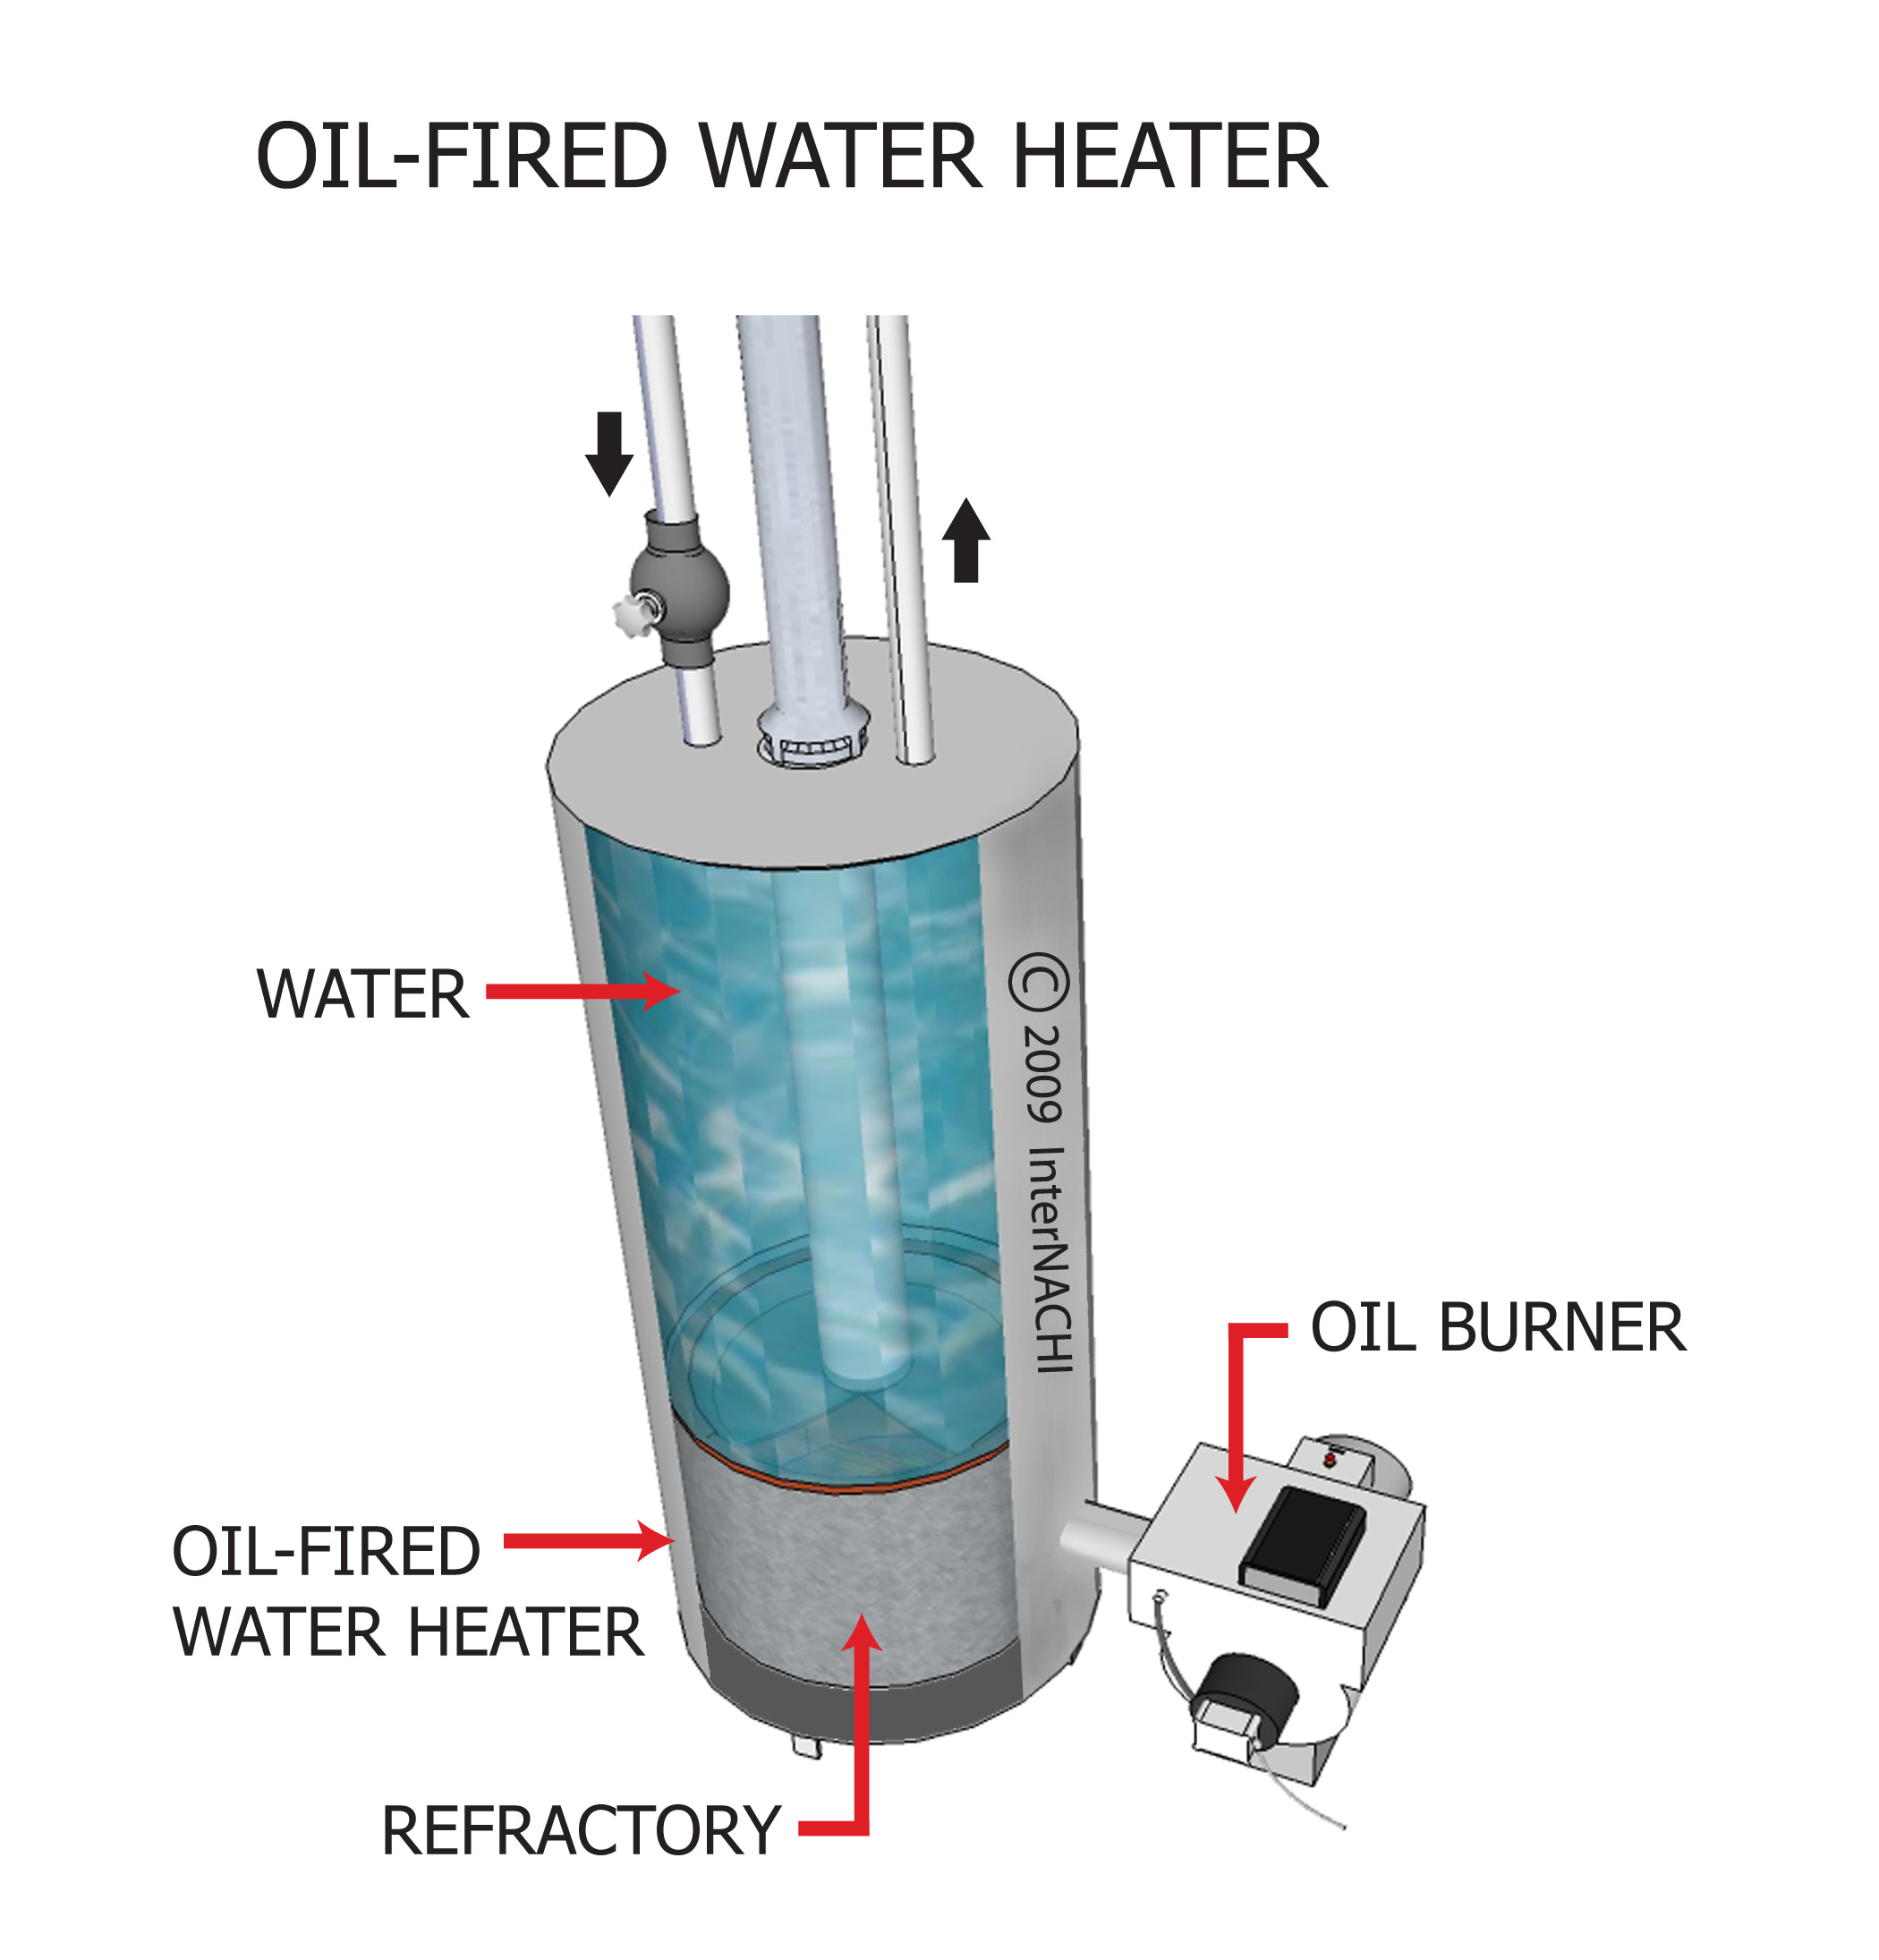 Oil-fired water heater.